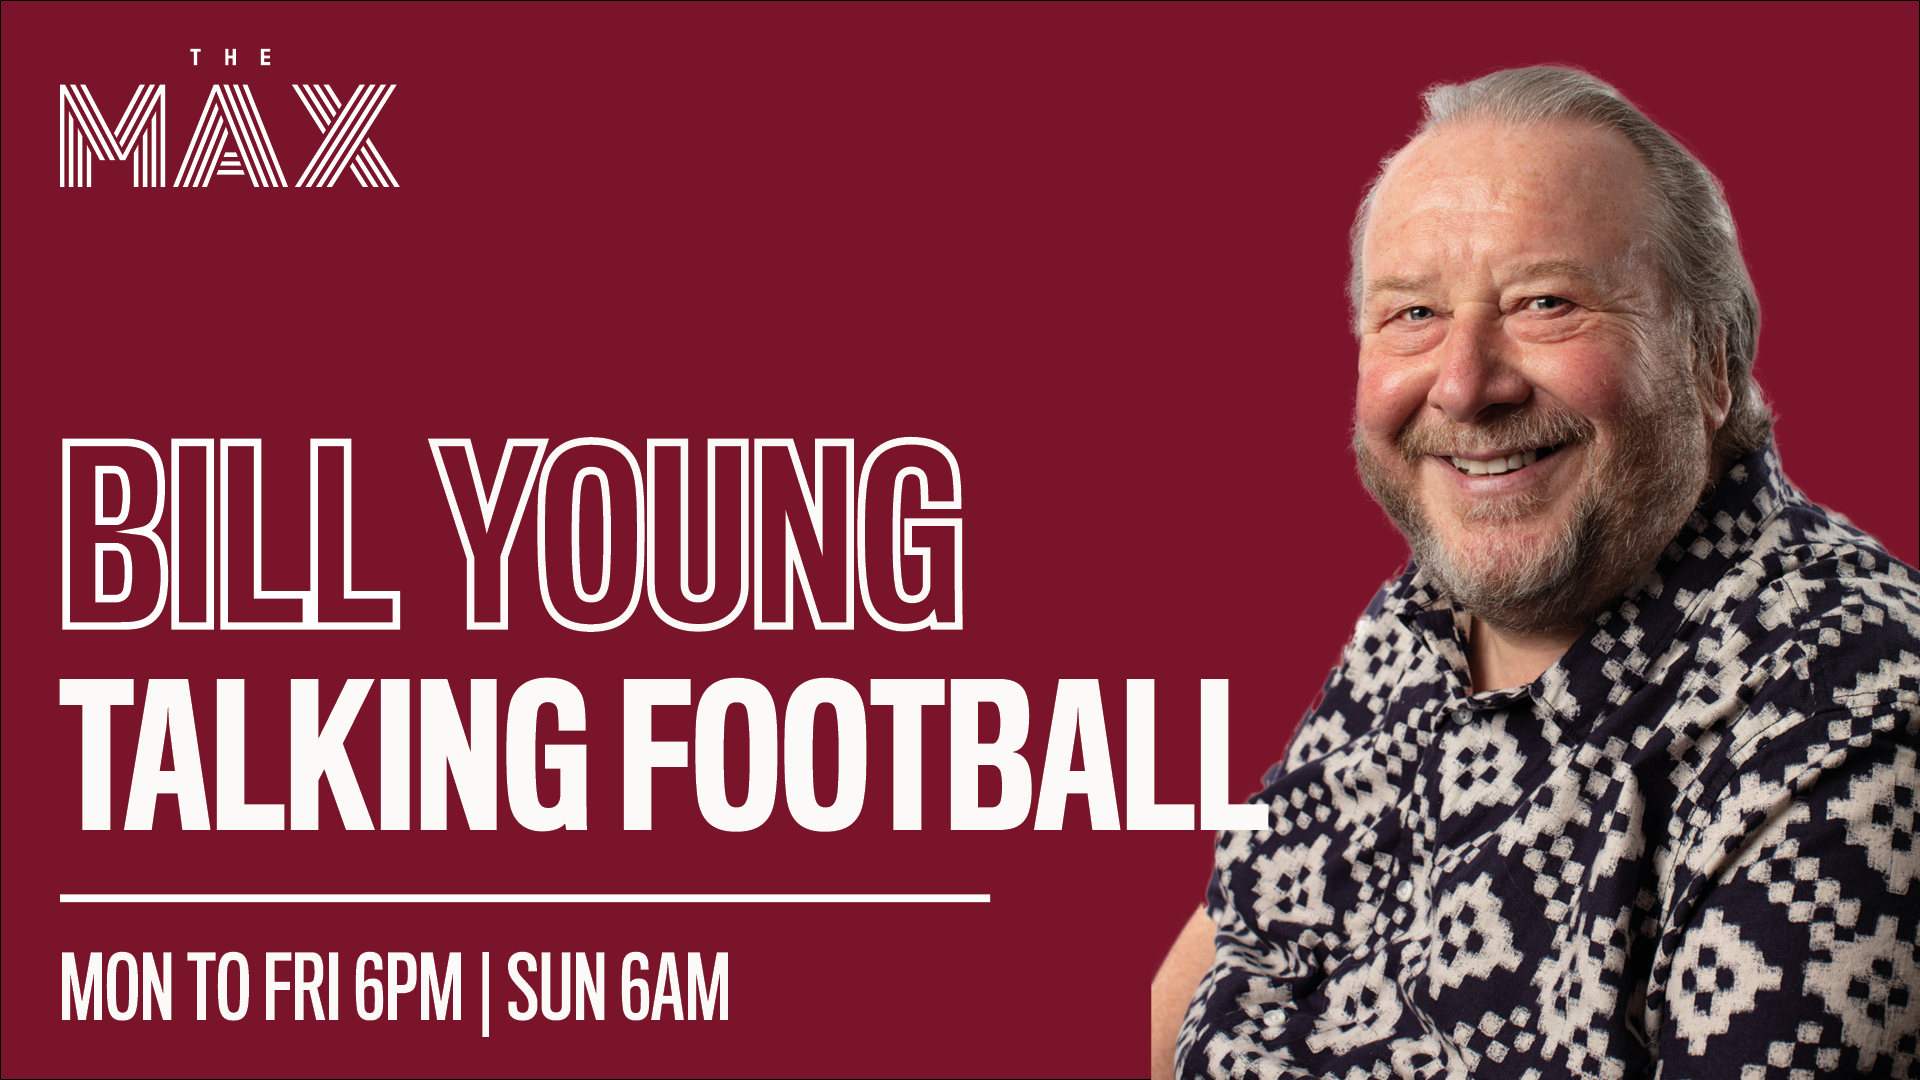 Talking Football with Bill Young - Monday 14th of September - Episode 30